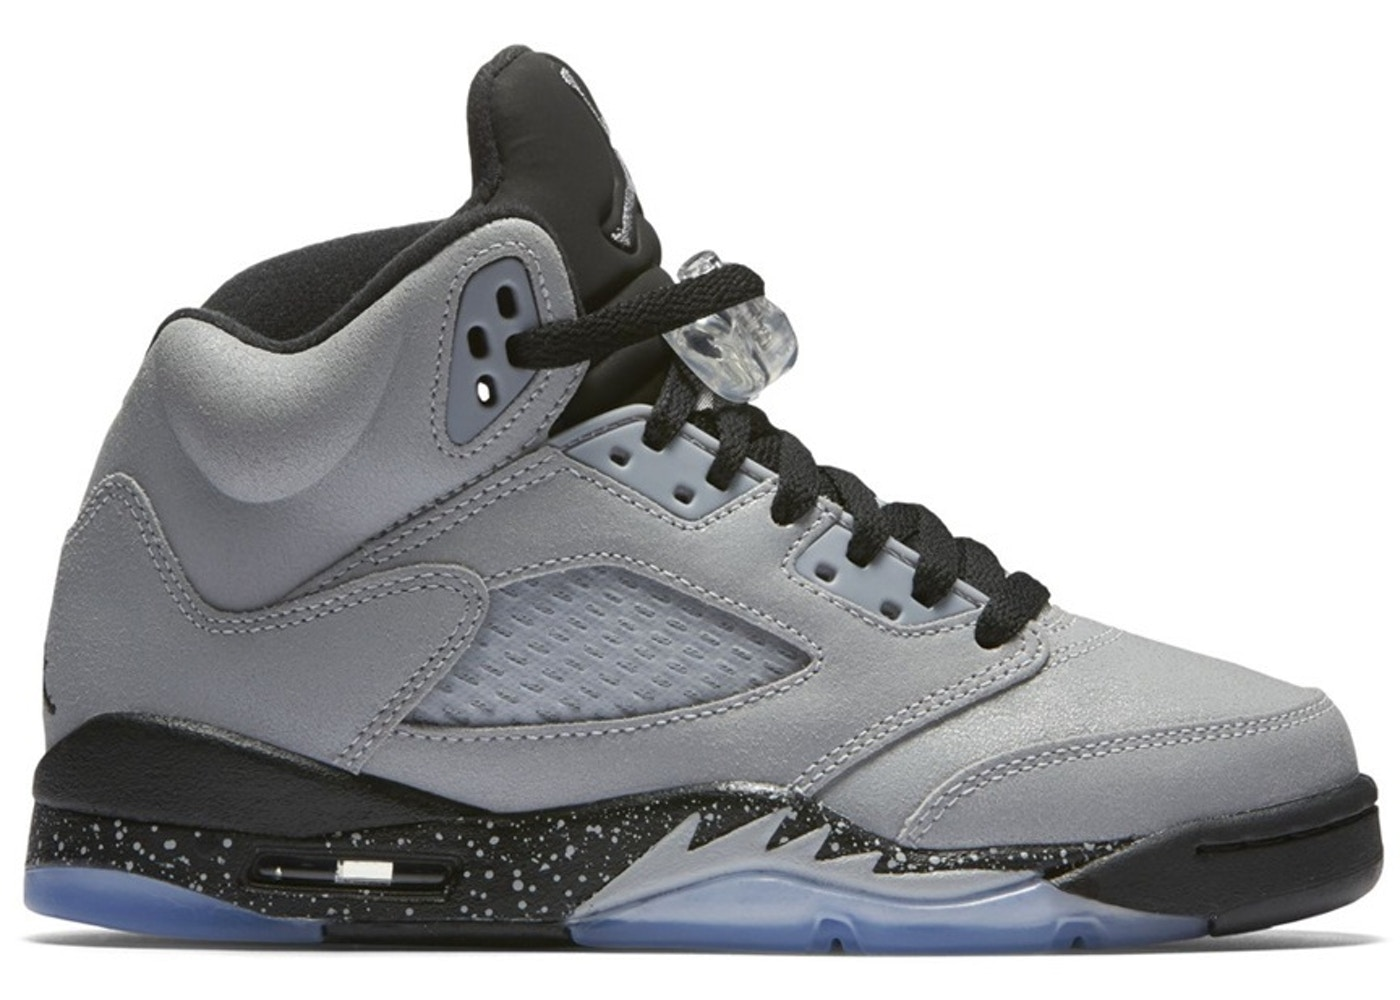 20ea5600 Jordan 5 Retro Wolf Grey (GS) - 440892-008